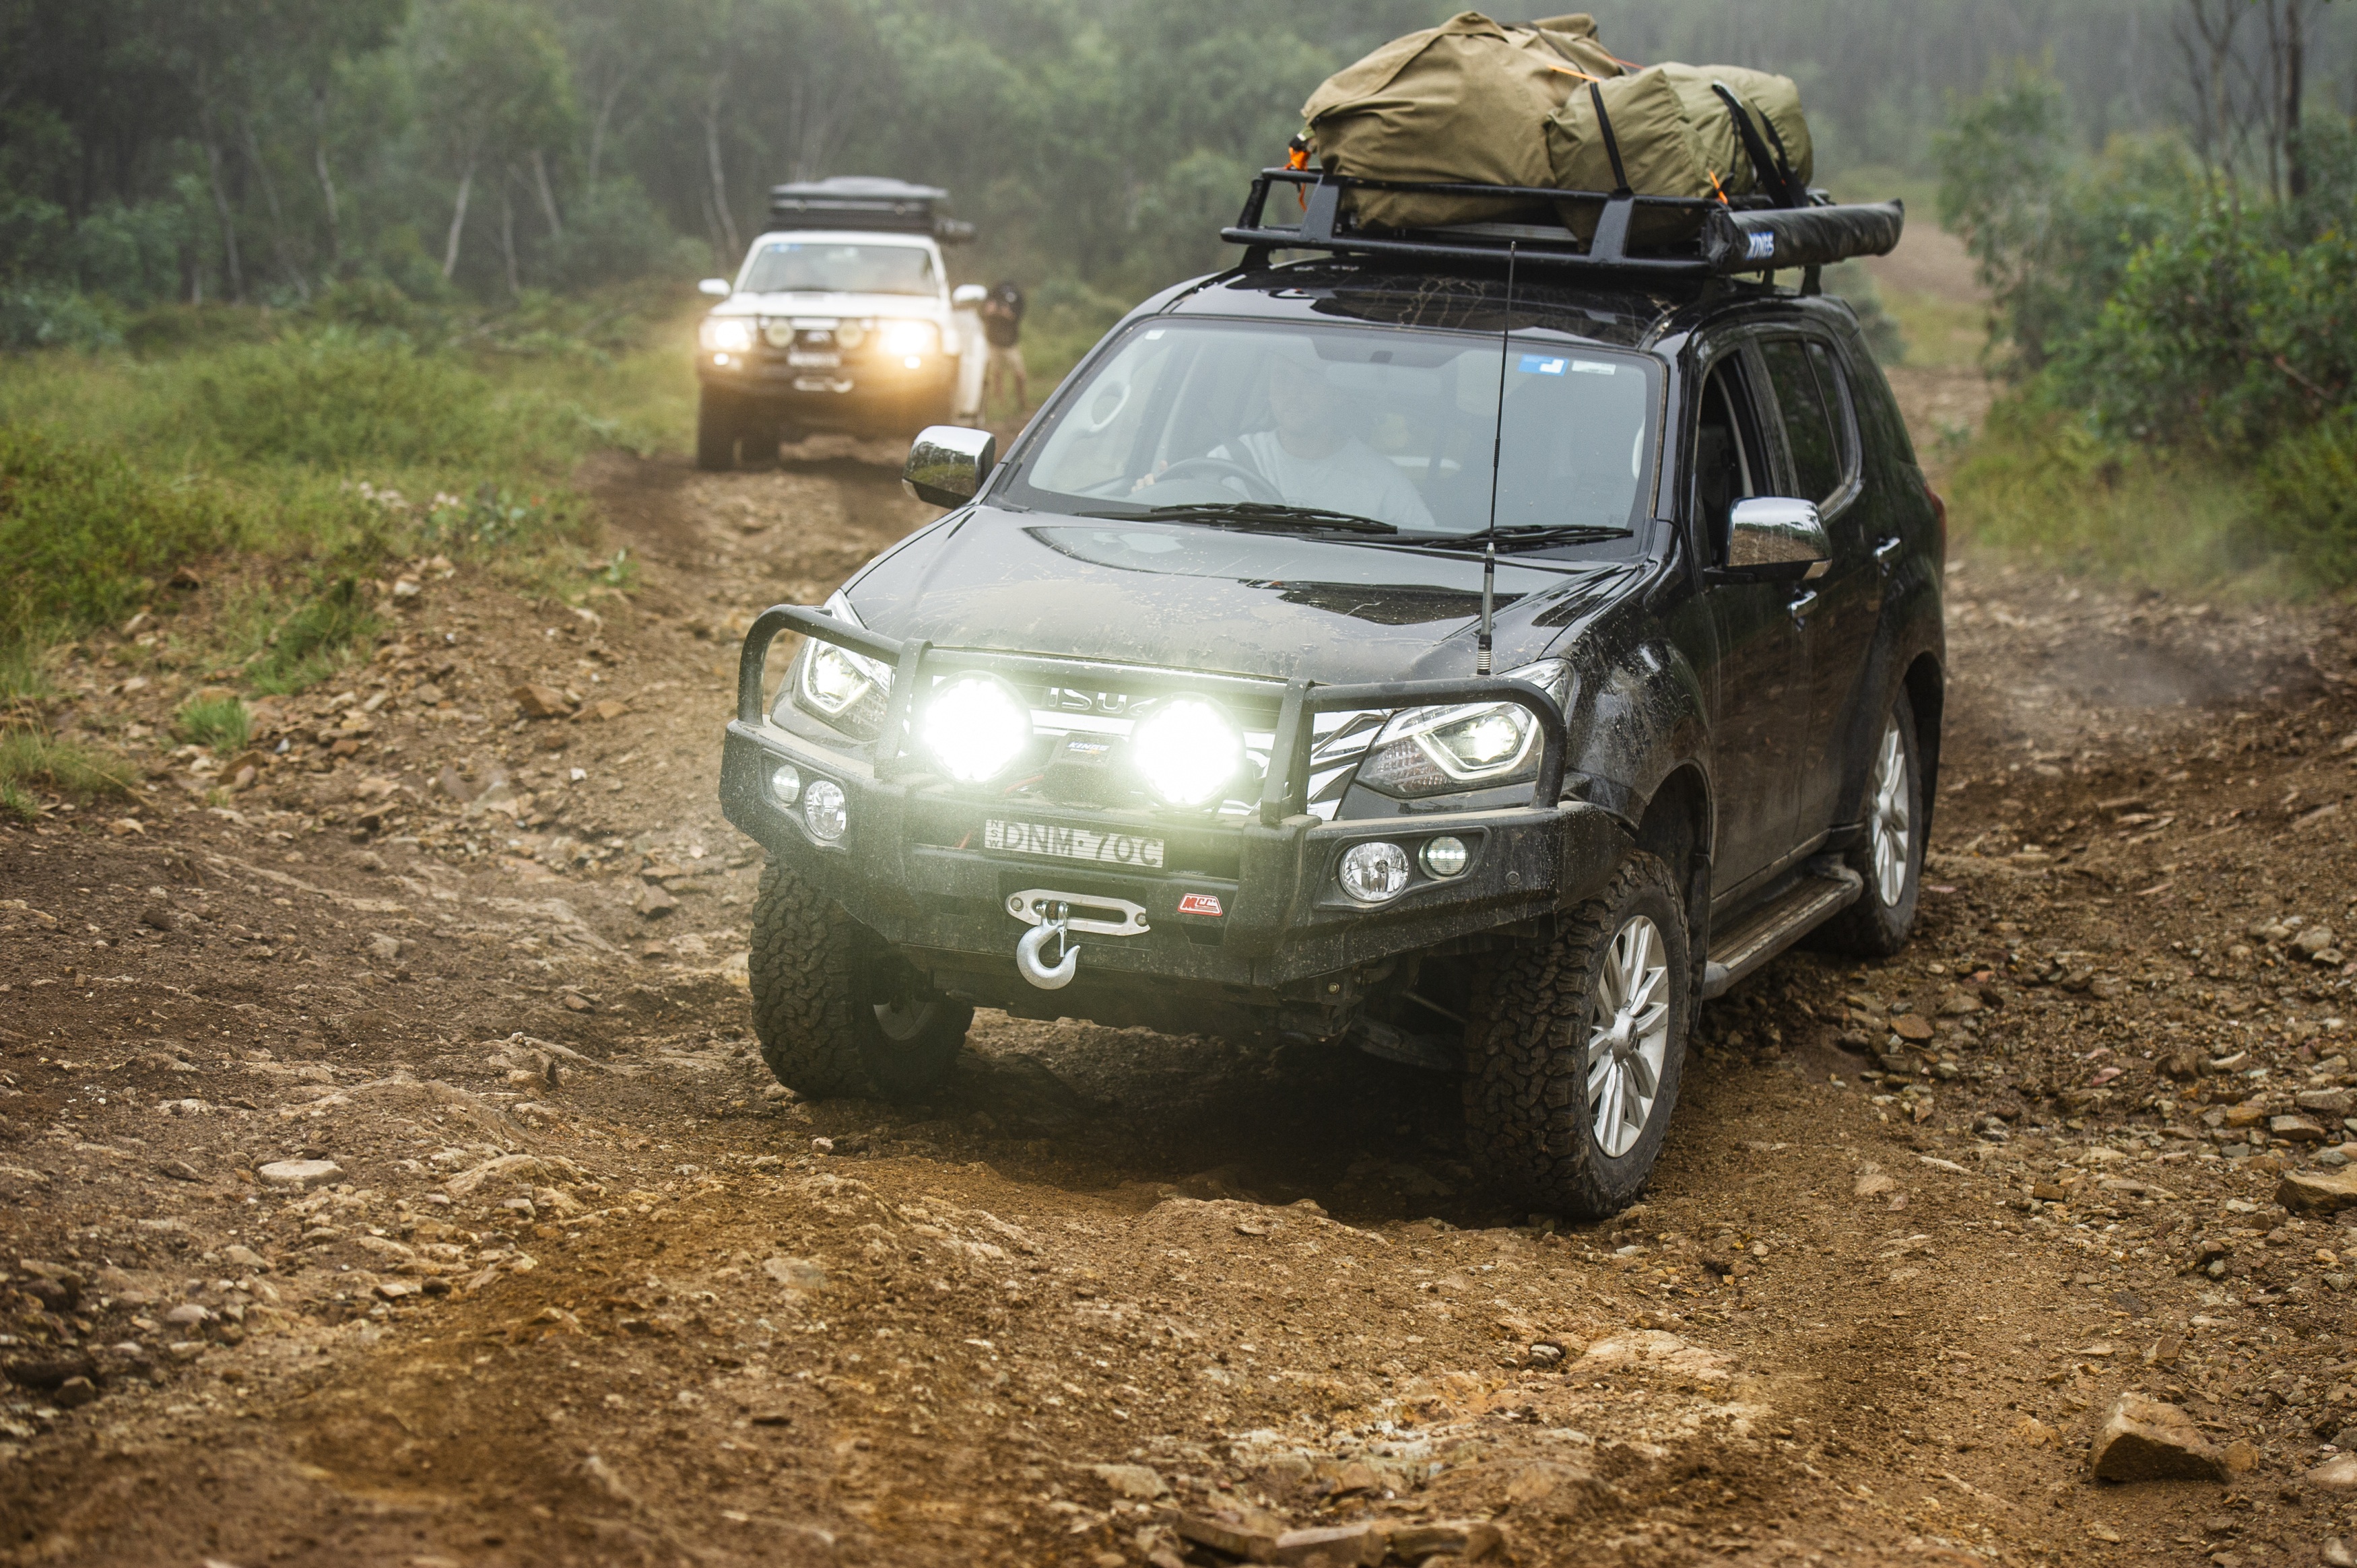 A Roof Top Tents have changed the way Aussies camp! - image 190214-HighCountry-Blowering_DJ-311-of-792 on https://www.4wdsupacentre.com.au/news